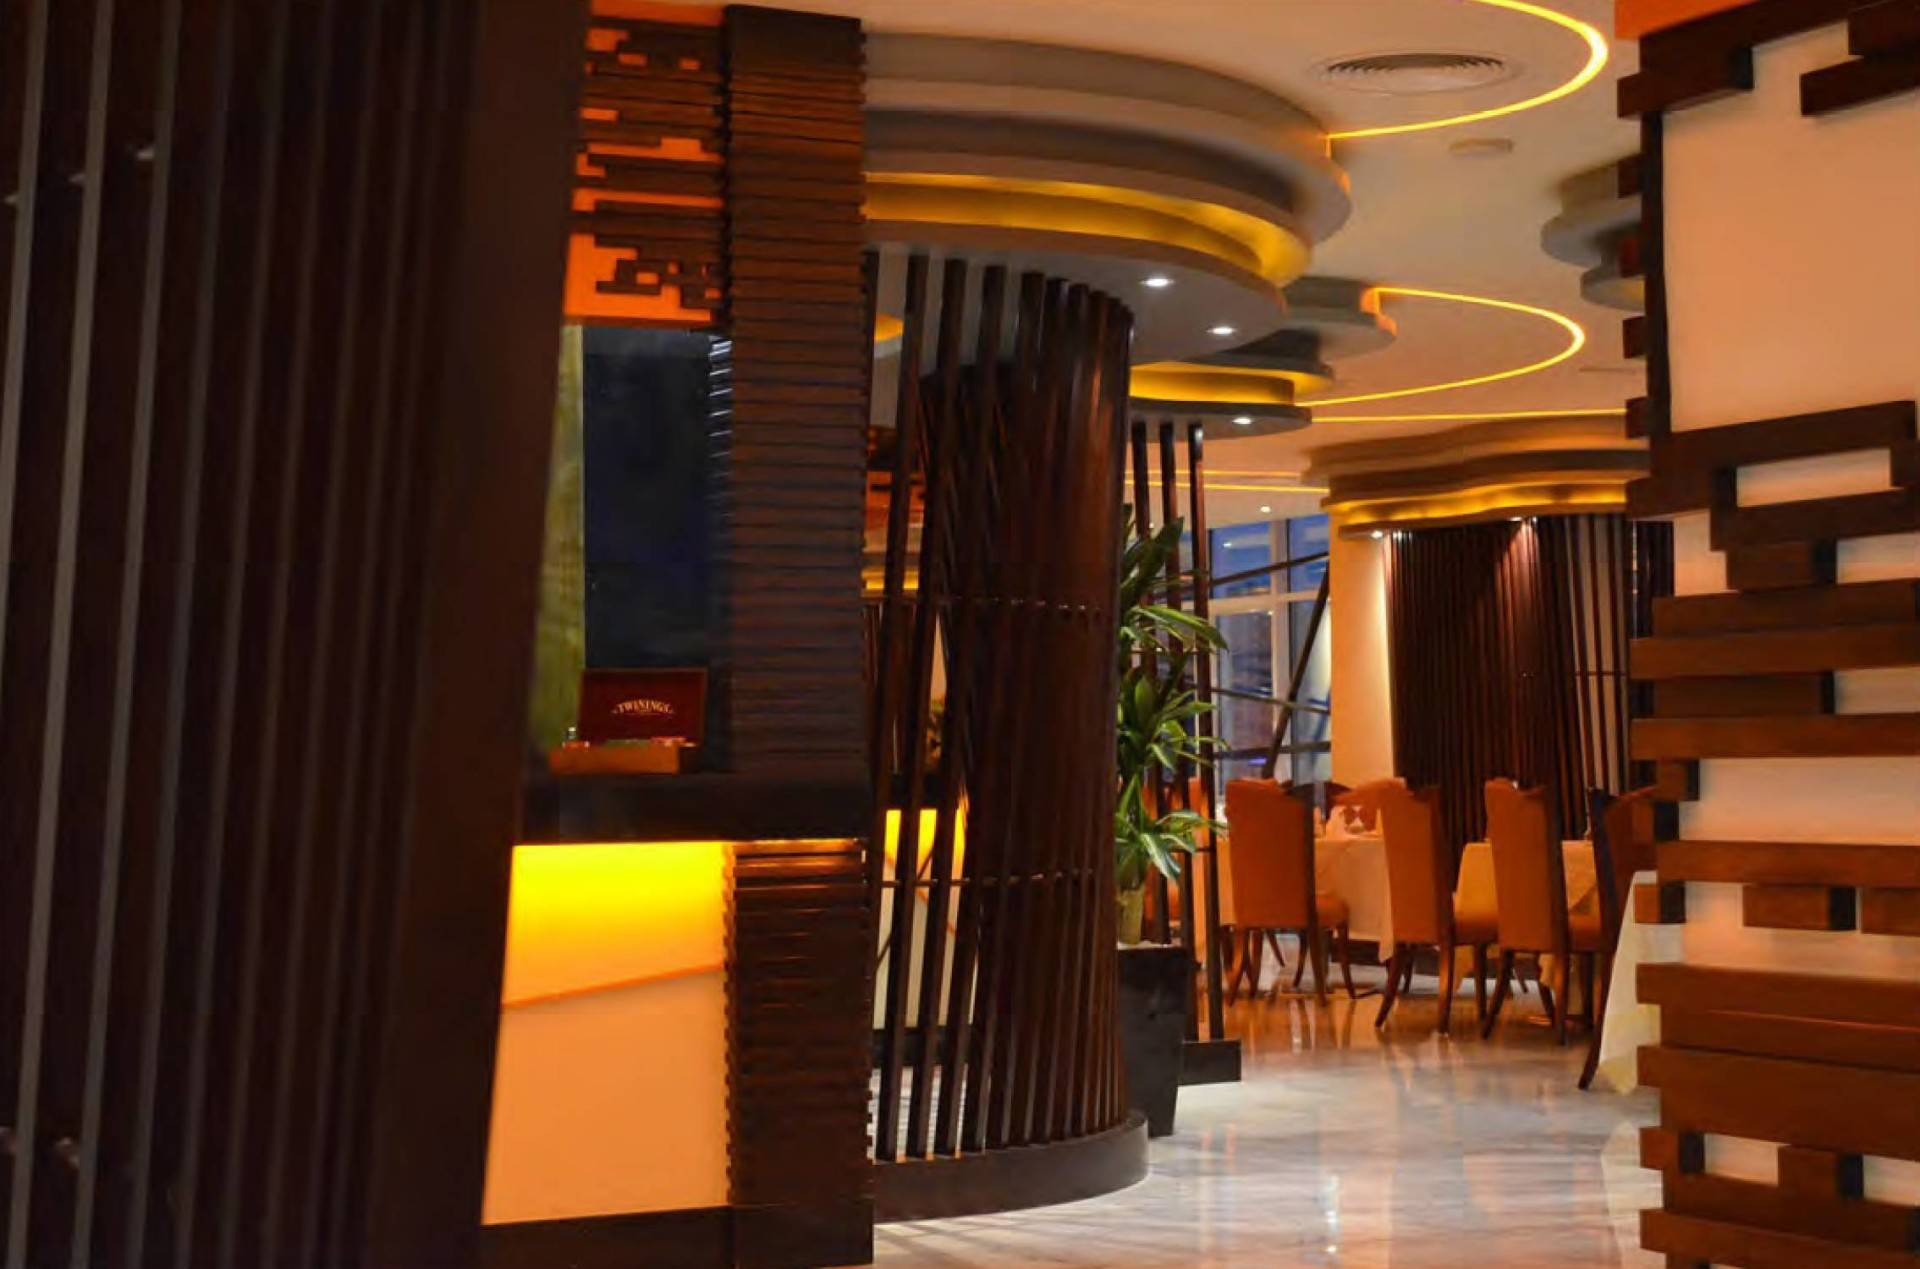 Mul I.d Design Consultant Ghaya Grand Hotel At Dubai United Arab Emirates United Arab Emirates Fushion-Restaurant2   3877